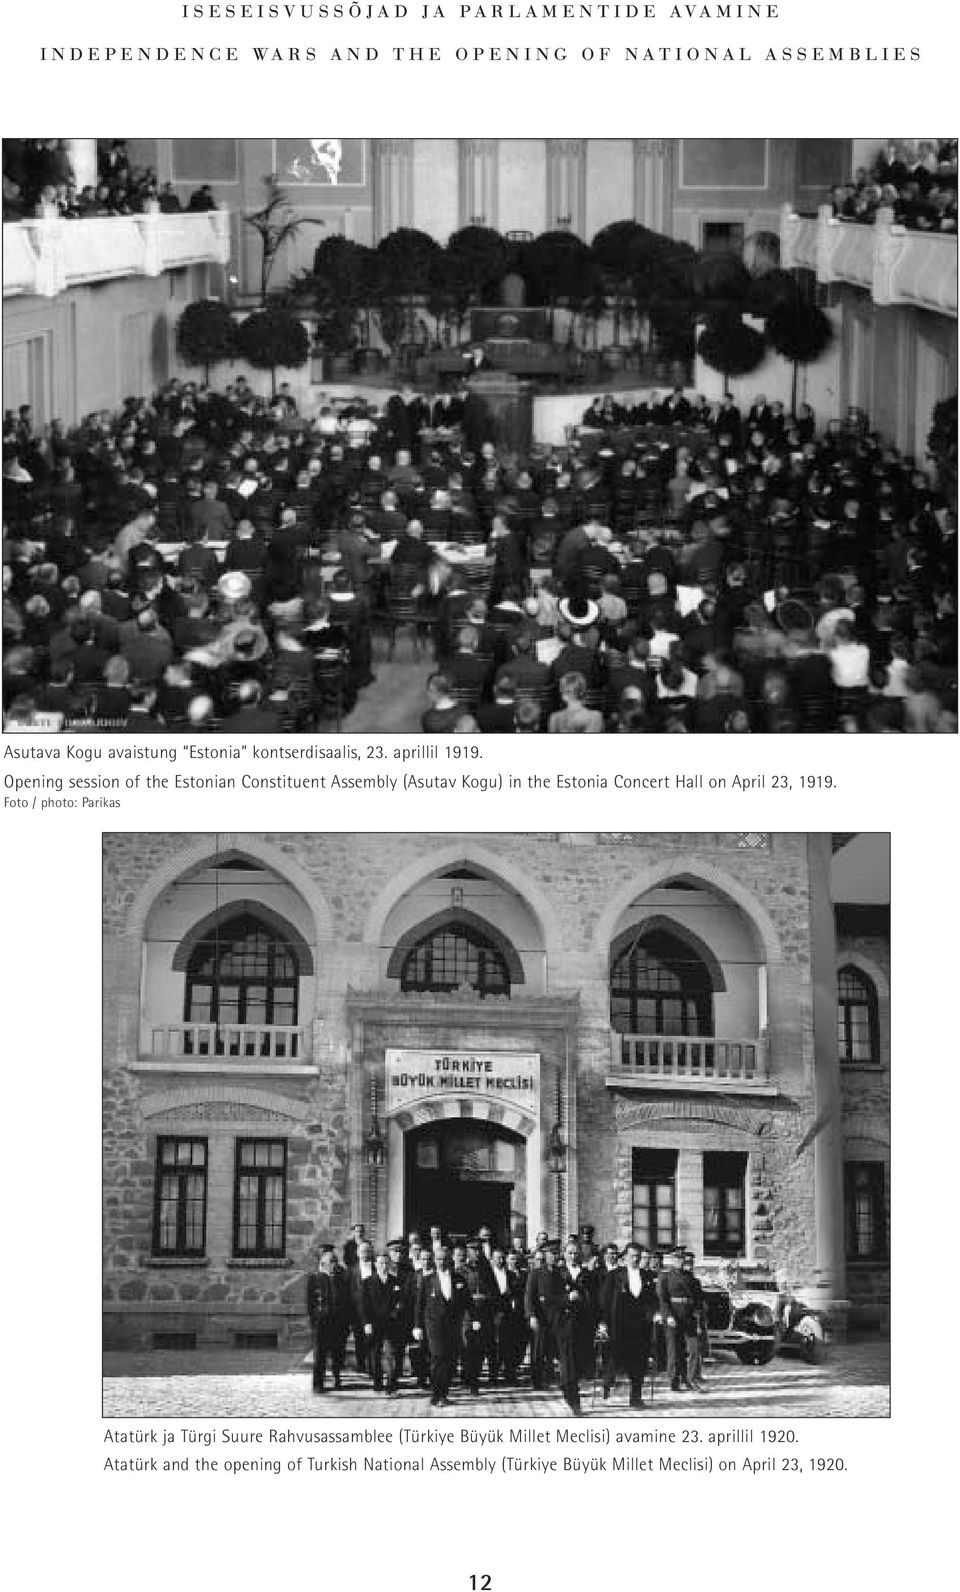 Opening session of the Estonian Constituent Assembly (Asutav Kogu) in the Estonia Concert Hall on April 23, 1919.